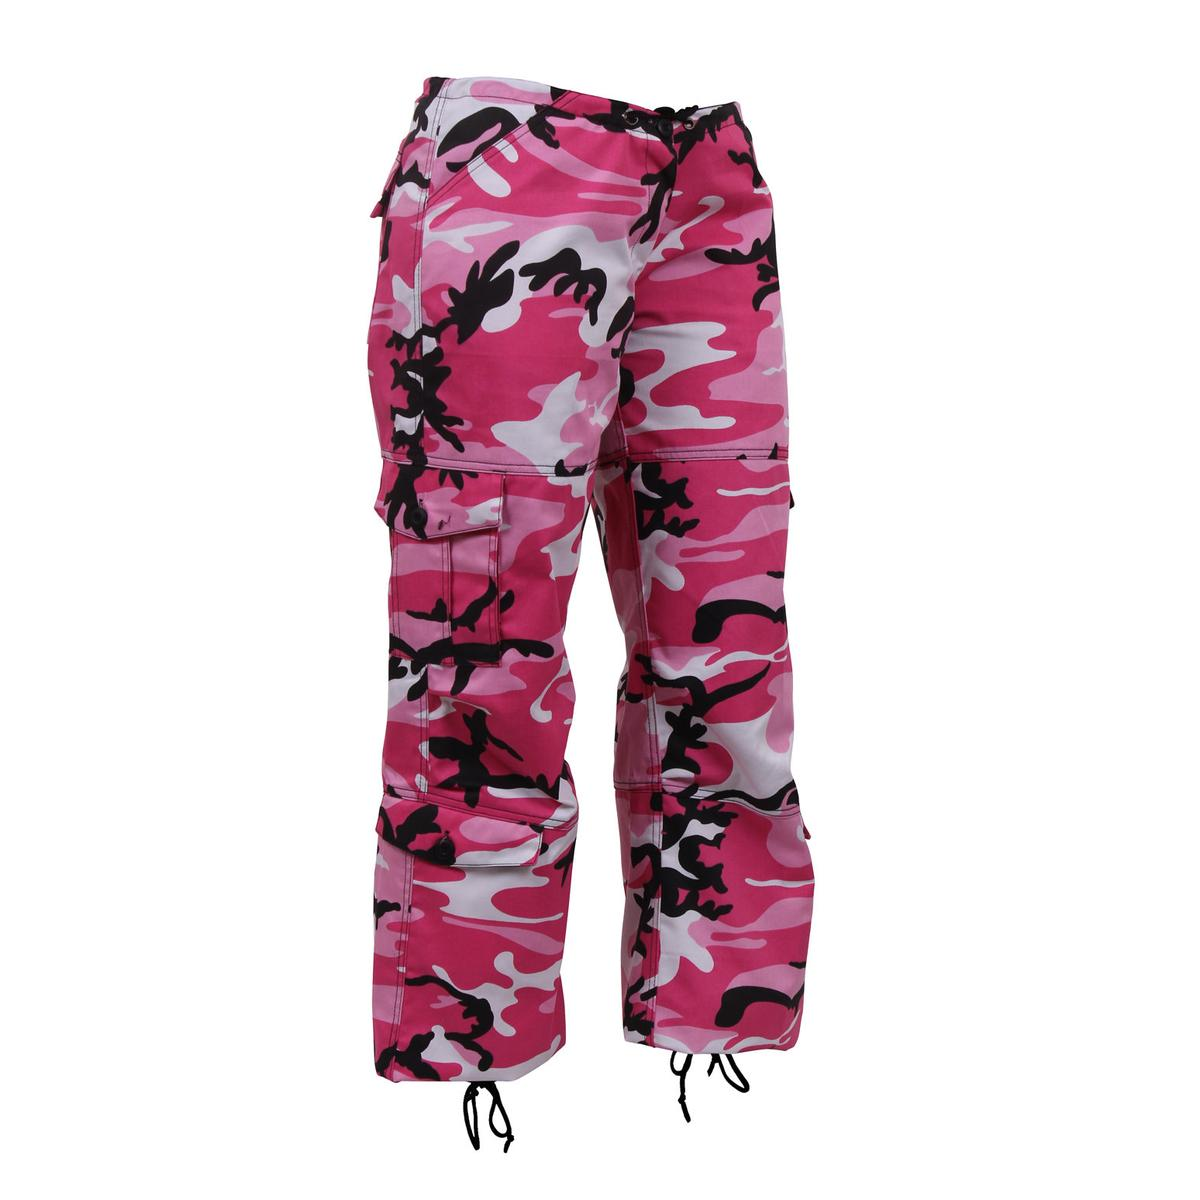 molto carino 71339 44e20 Details about Rothco Womens Paratrooper Colored Camouflage Fatigue Pants